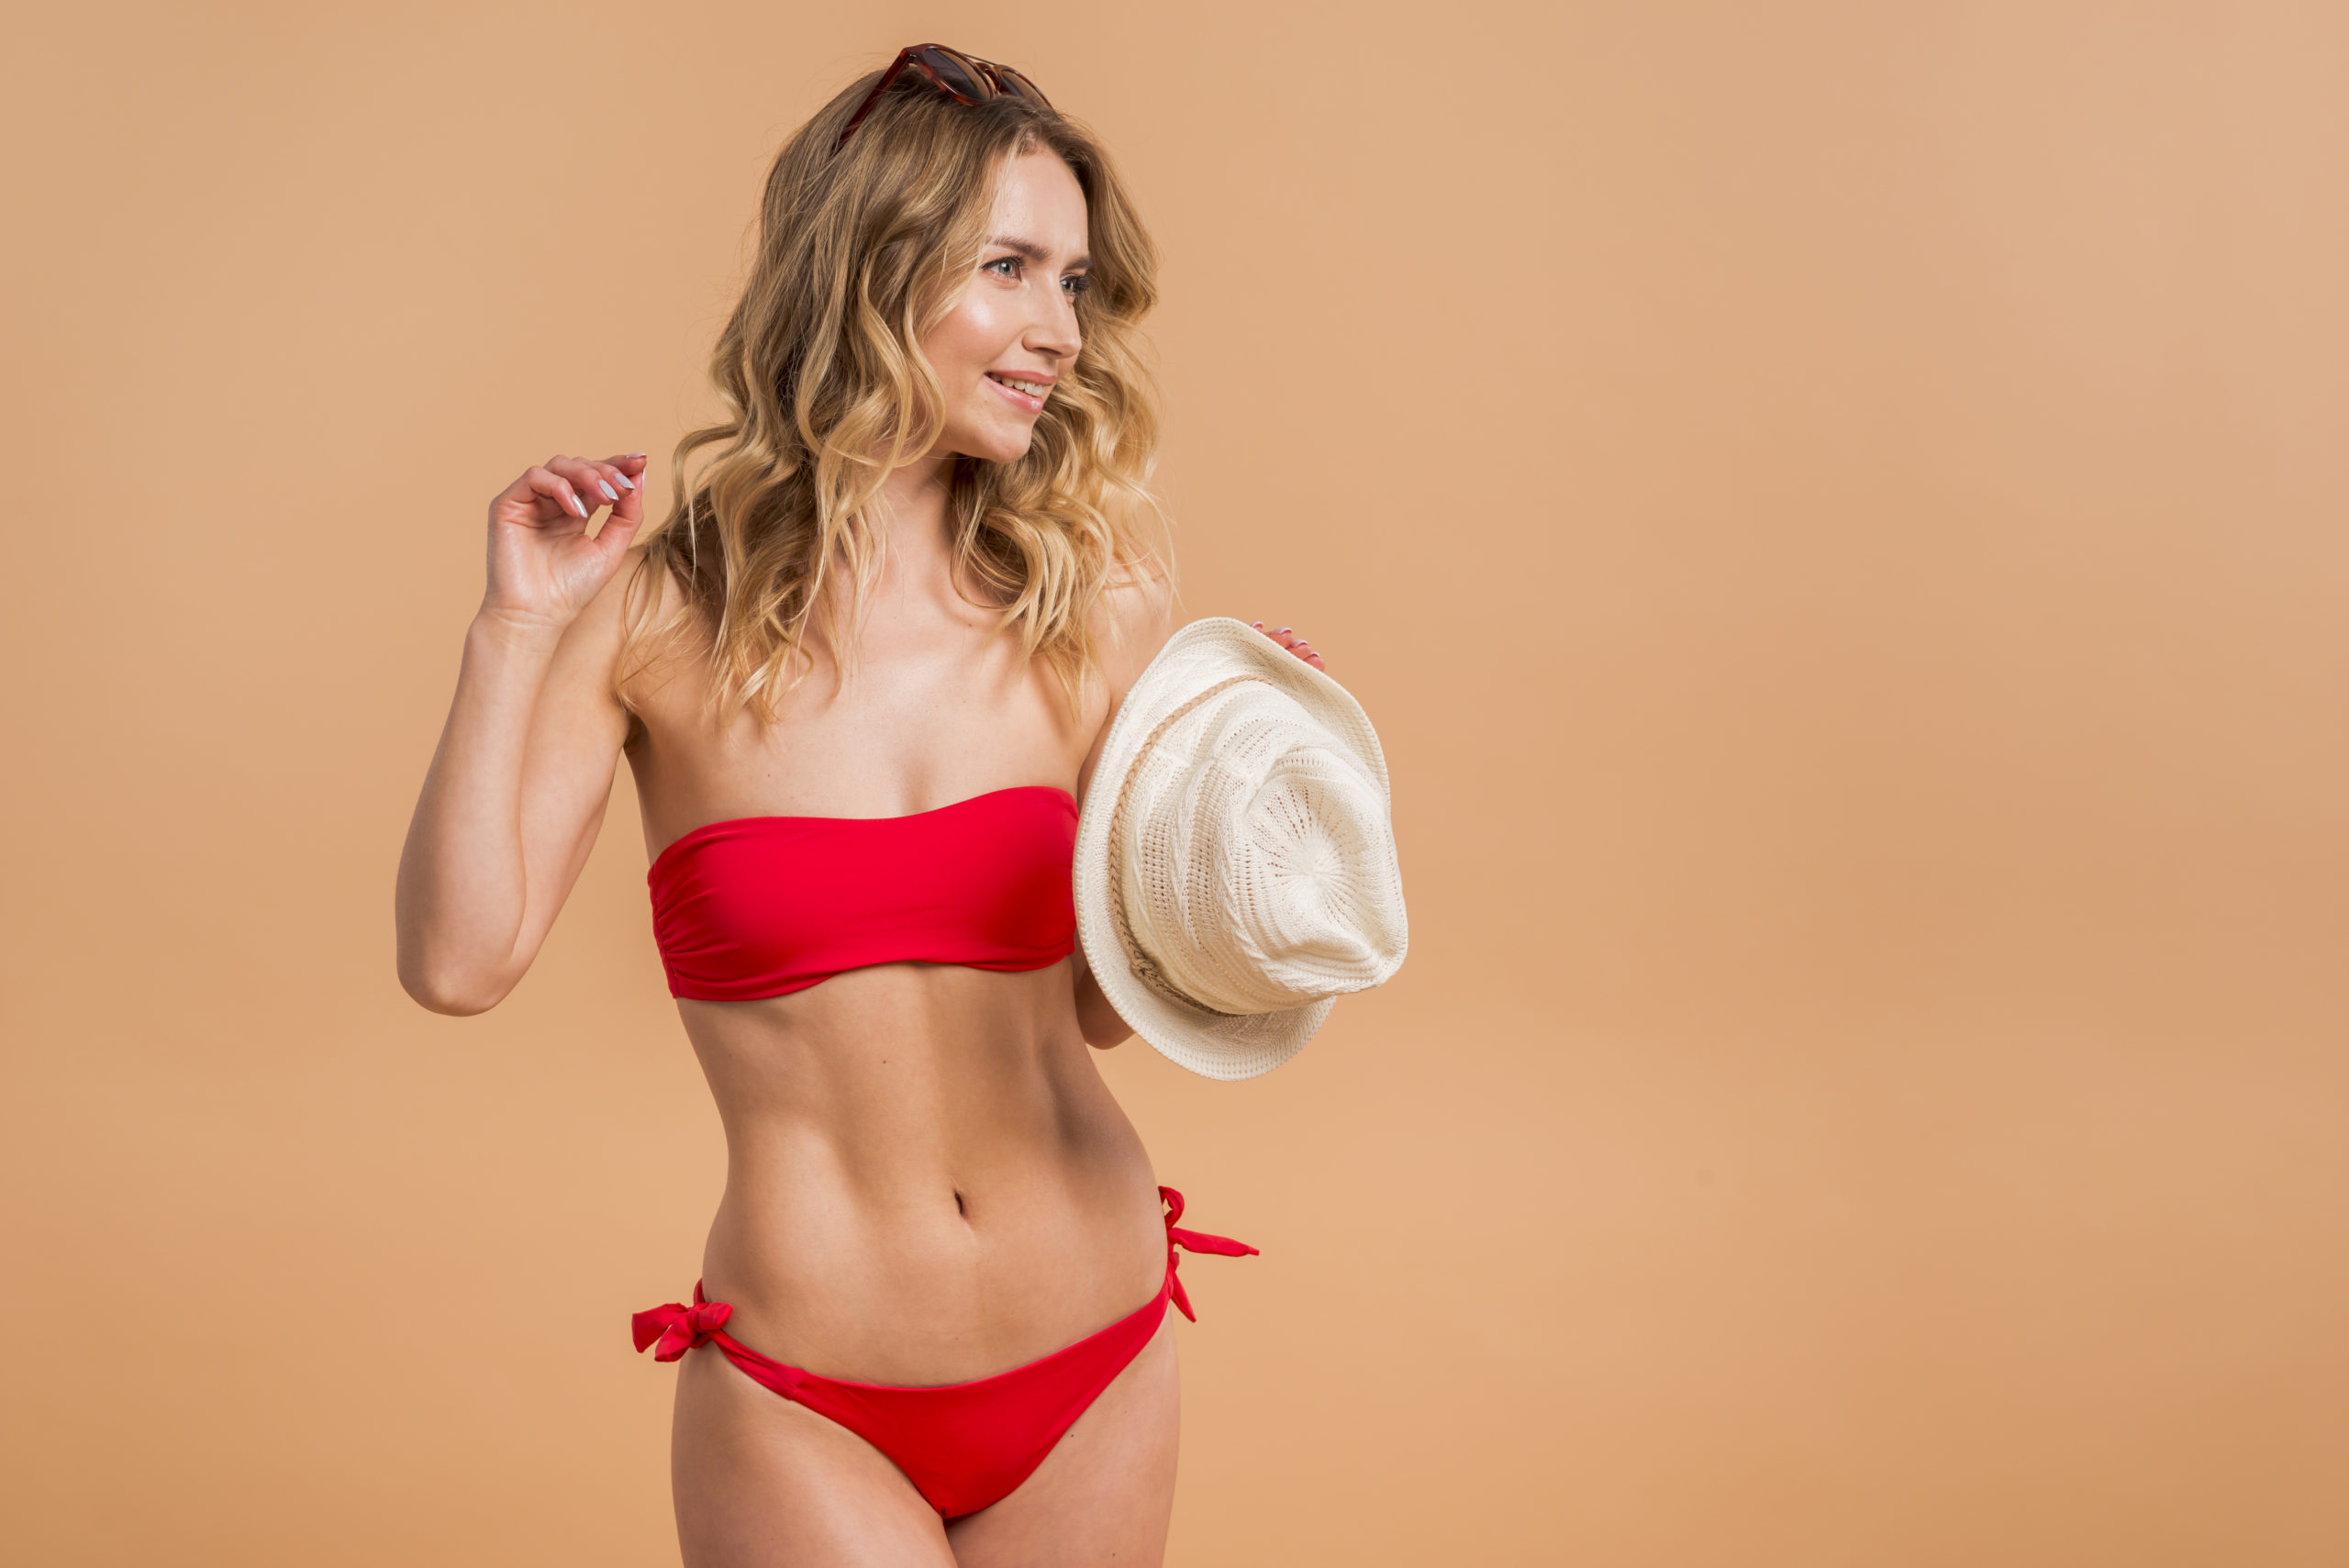 How Abdominoplasty Surgery Gives You a Tighter Tummy